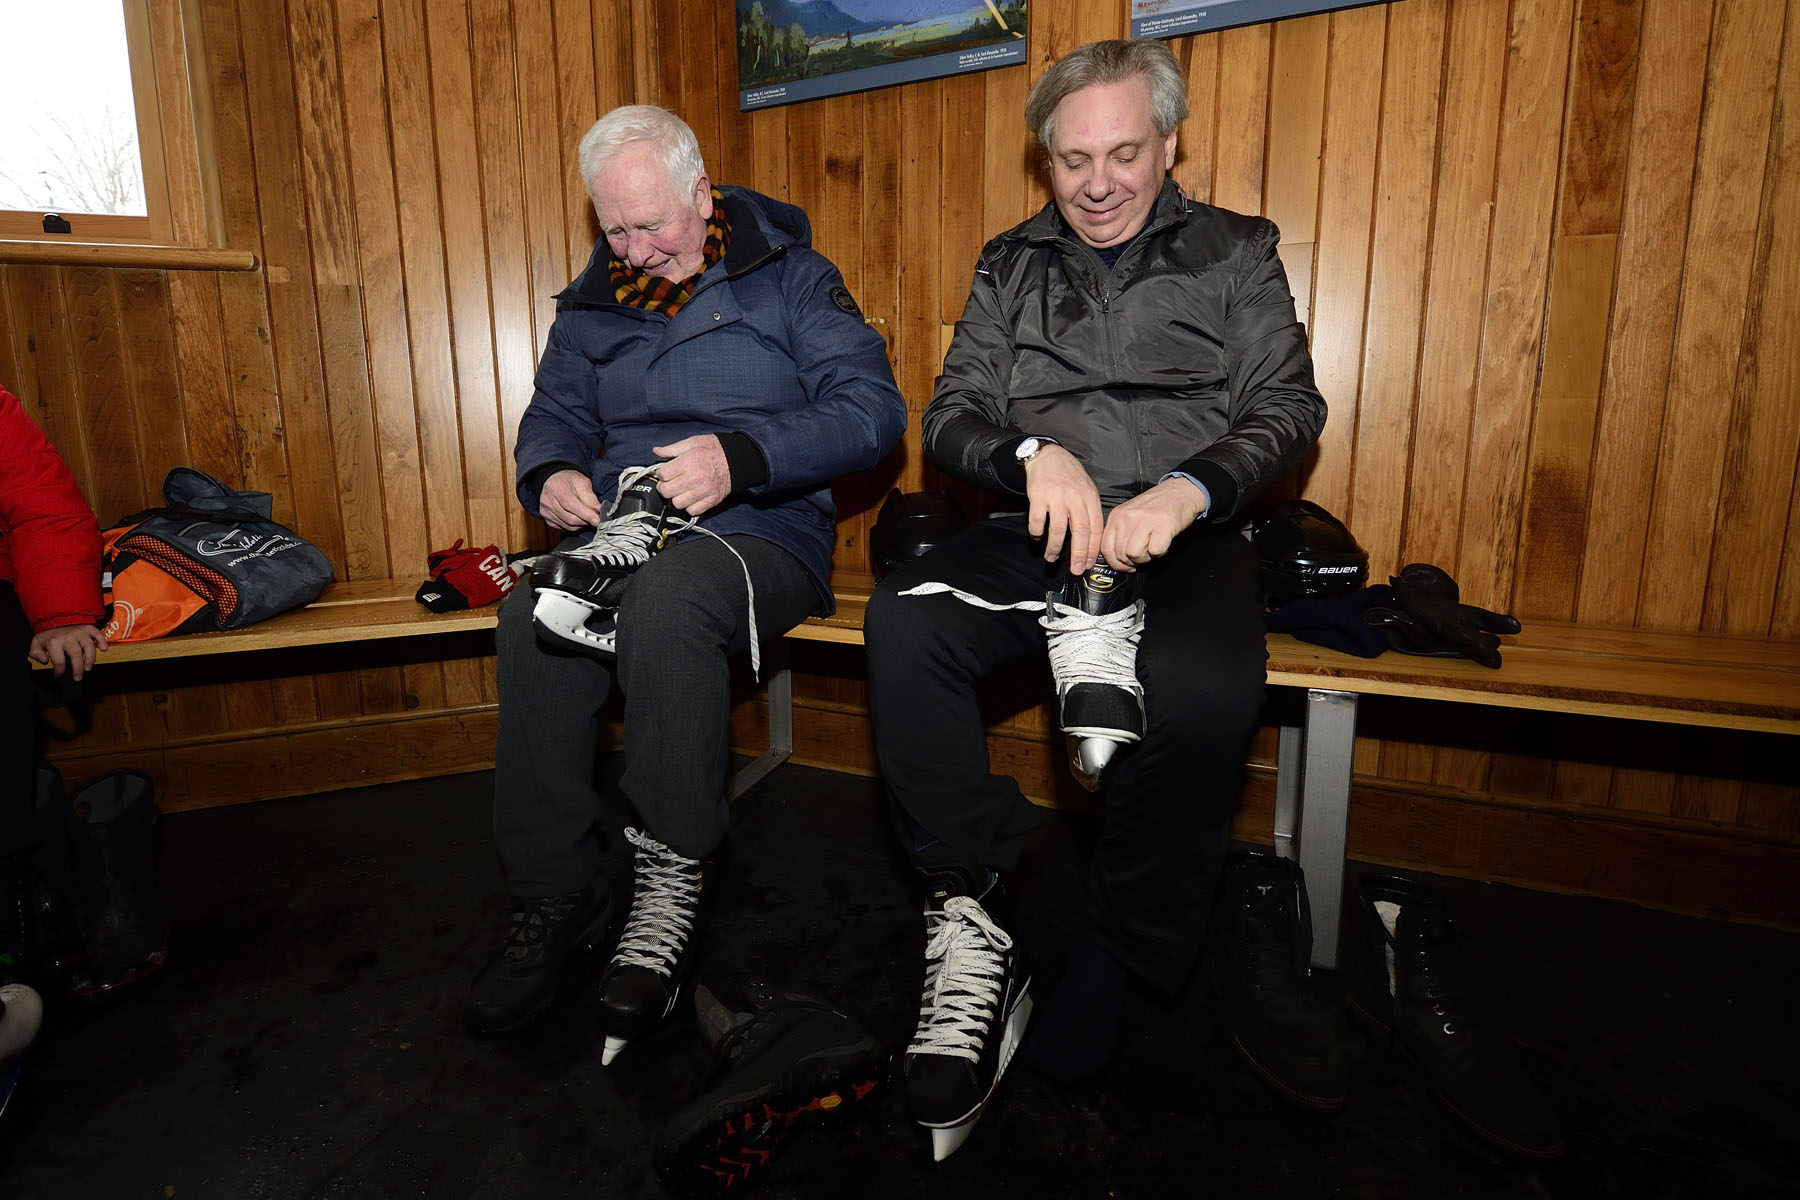 Governor General David Johnston and Dr. Mark Kristmanson, Chief Executive Officer of the National Capital Commission, are lacing up their skates inside the Winter Pavilion before trying out Rideau Hall's newly refrigerated skating rink.